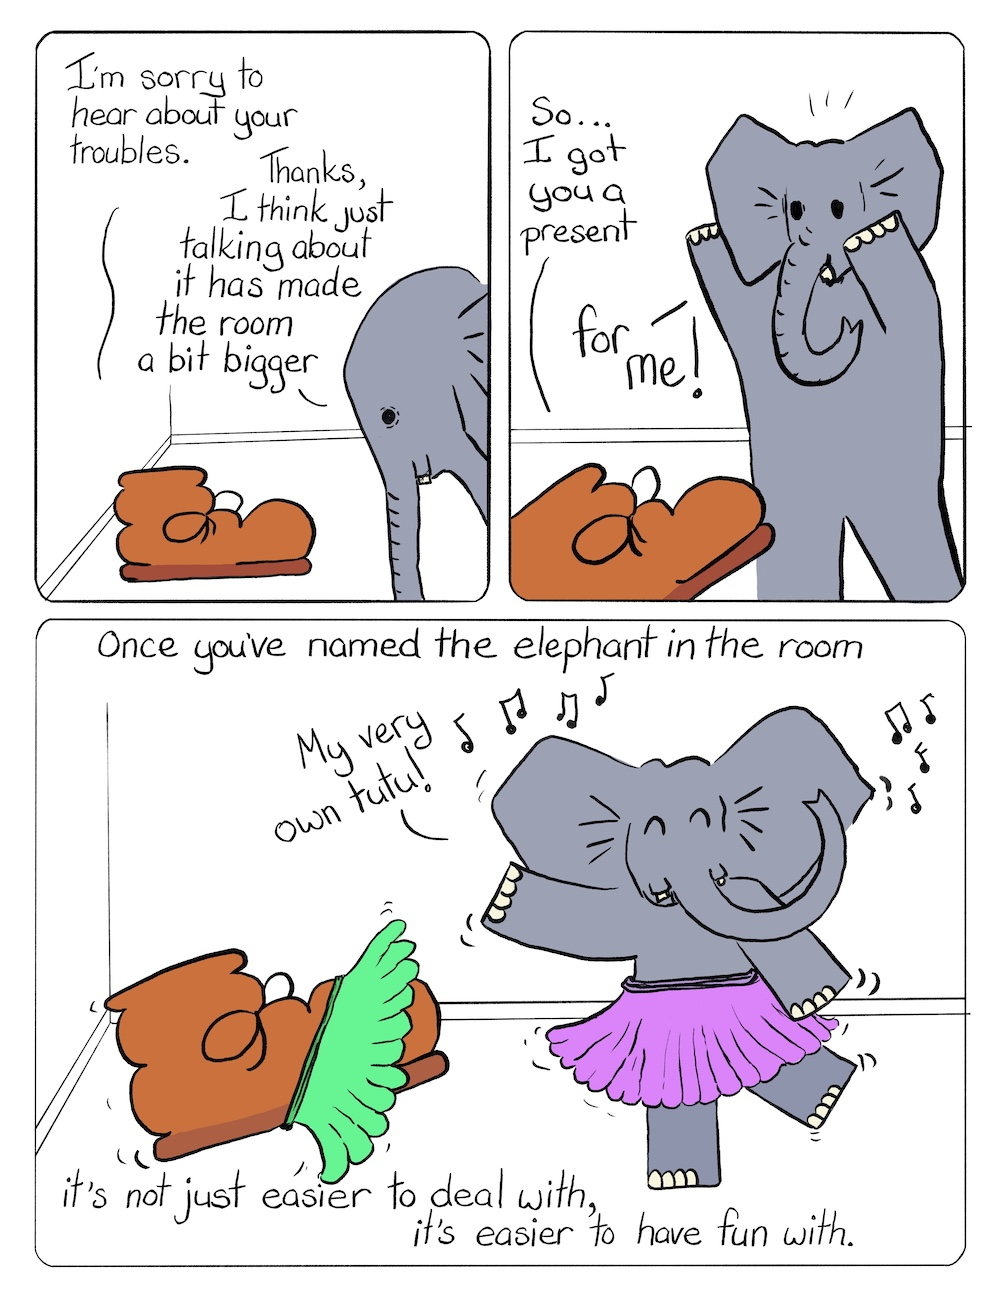 Elephant in the Room Part 2 Comic Transcript A brown work boot and a grey elephant are talking to each other in a small room. Boot: I'm sorry to hear about your troubles. Elephant: Thanks, I think just talking about it has made the room a bit bigger. Boot: So... I got you a present. Elephant: For me! Boot and Elephant have put on a green tutu and a purple tutu and are dancing to music. Elephant: My very own tutu! Caption: Once you've named the elephant in the room, it's not just easier to deal with, it's easier to have fun with.